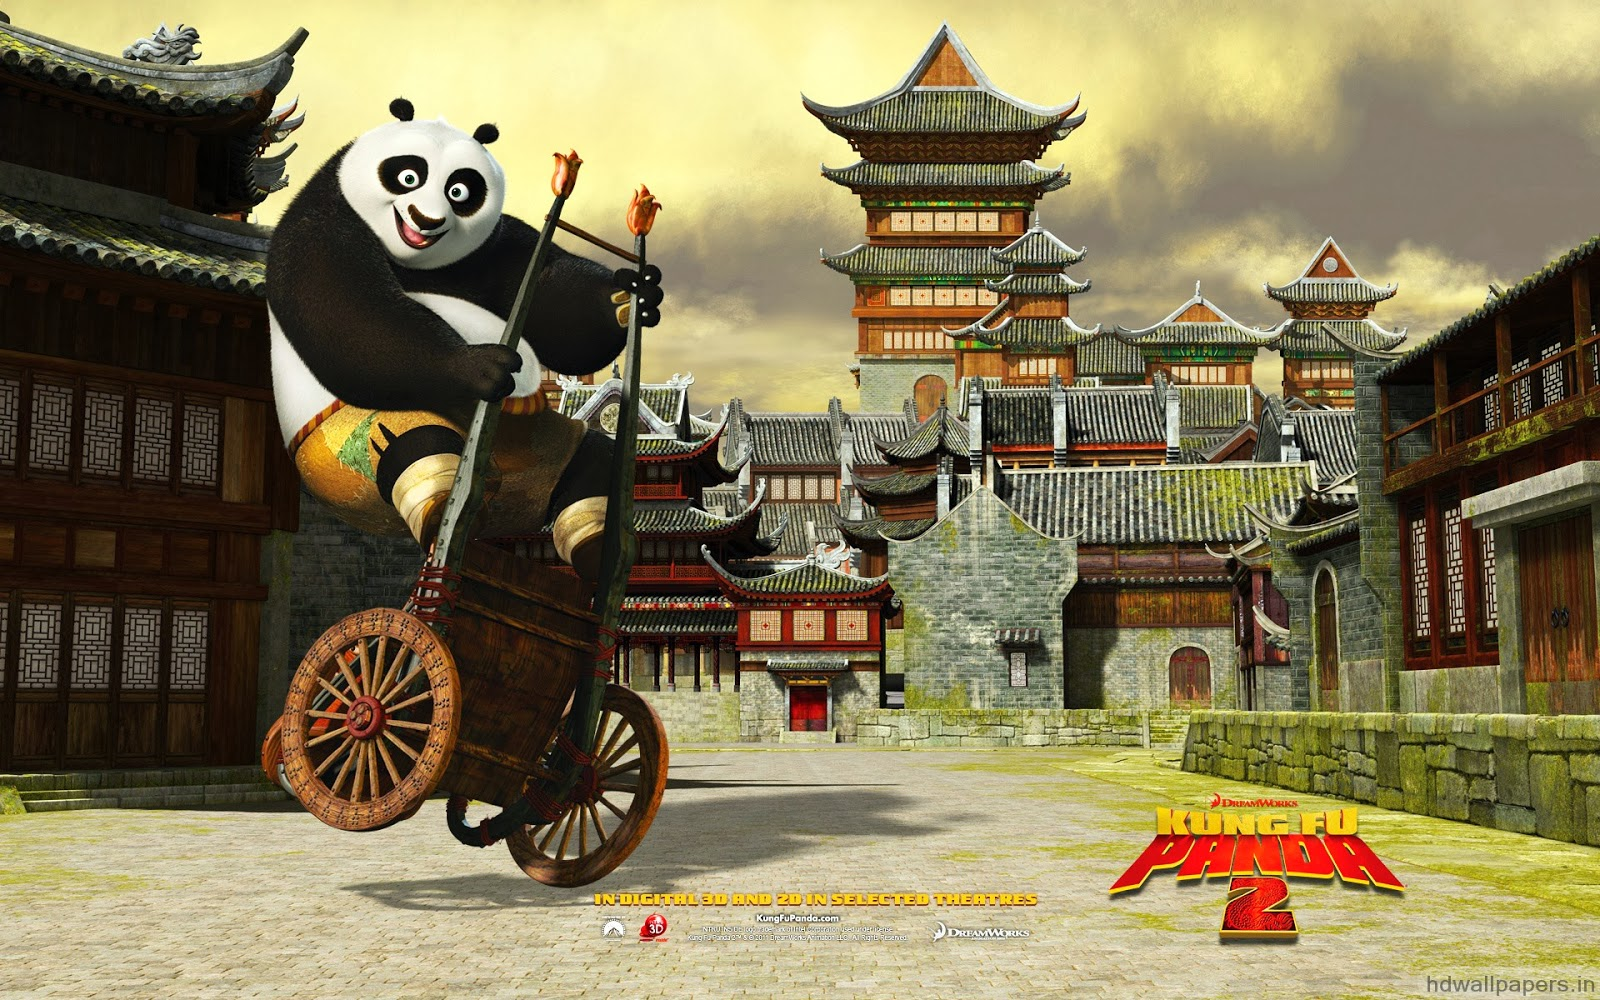 kungfu panda wallpapers hd - beautiful wallpapers collection 2018